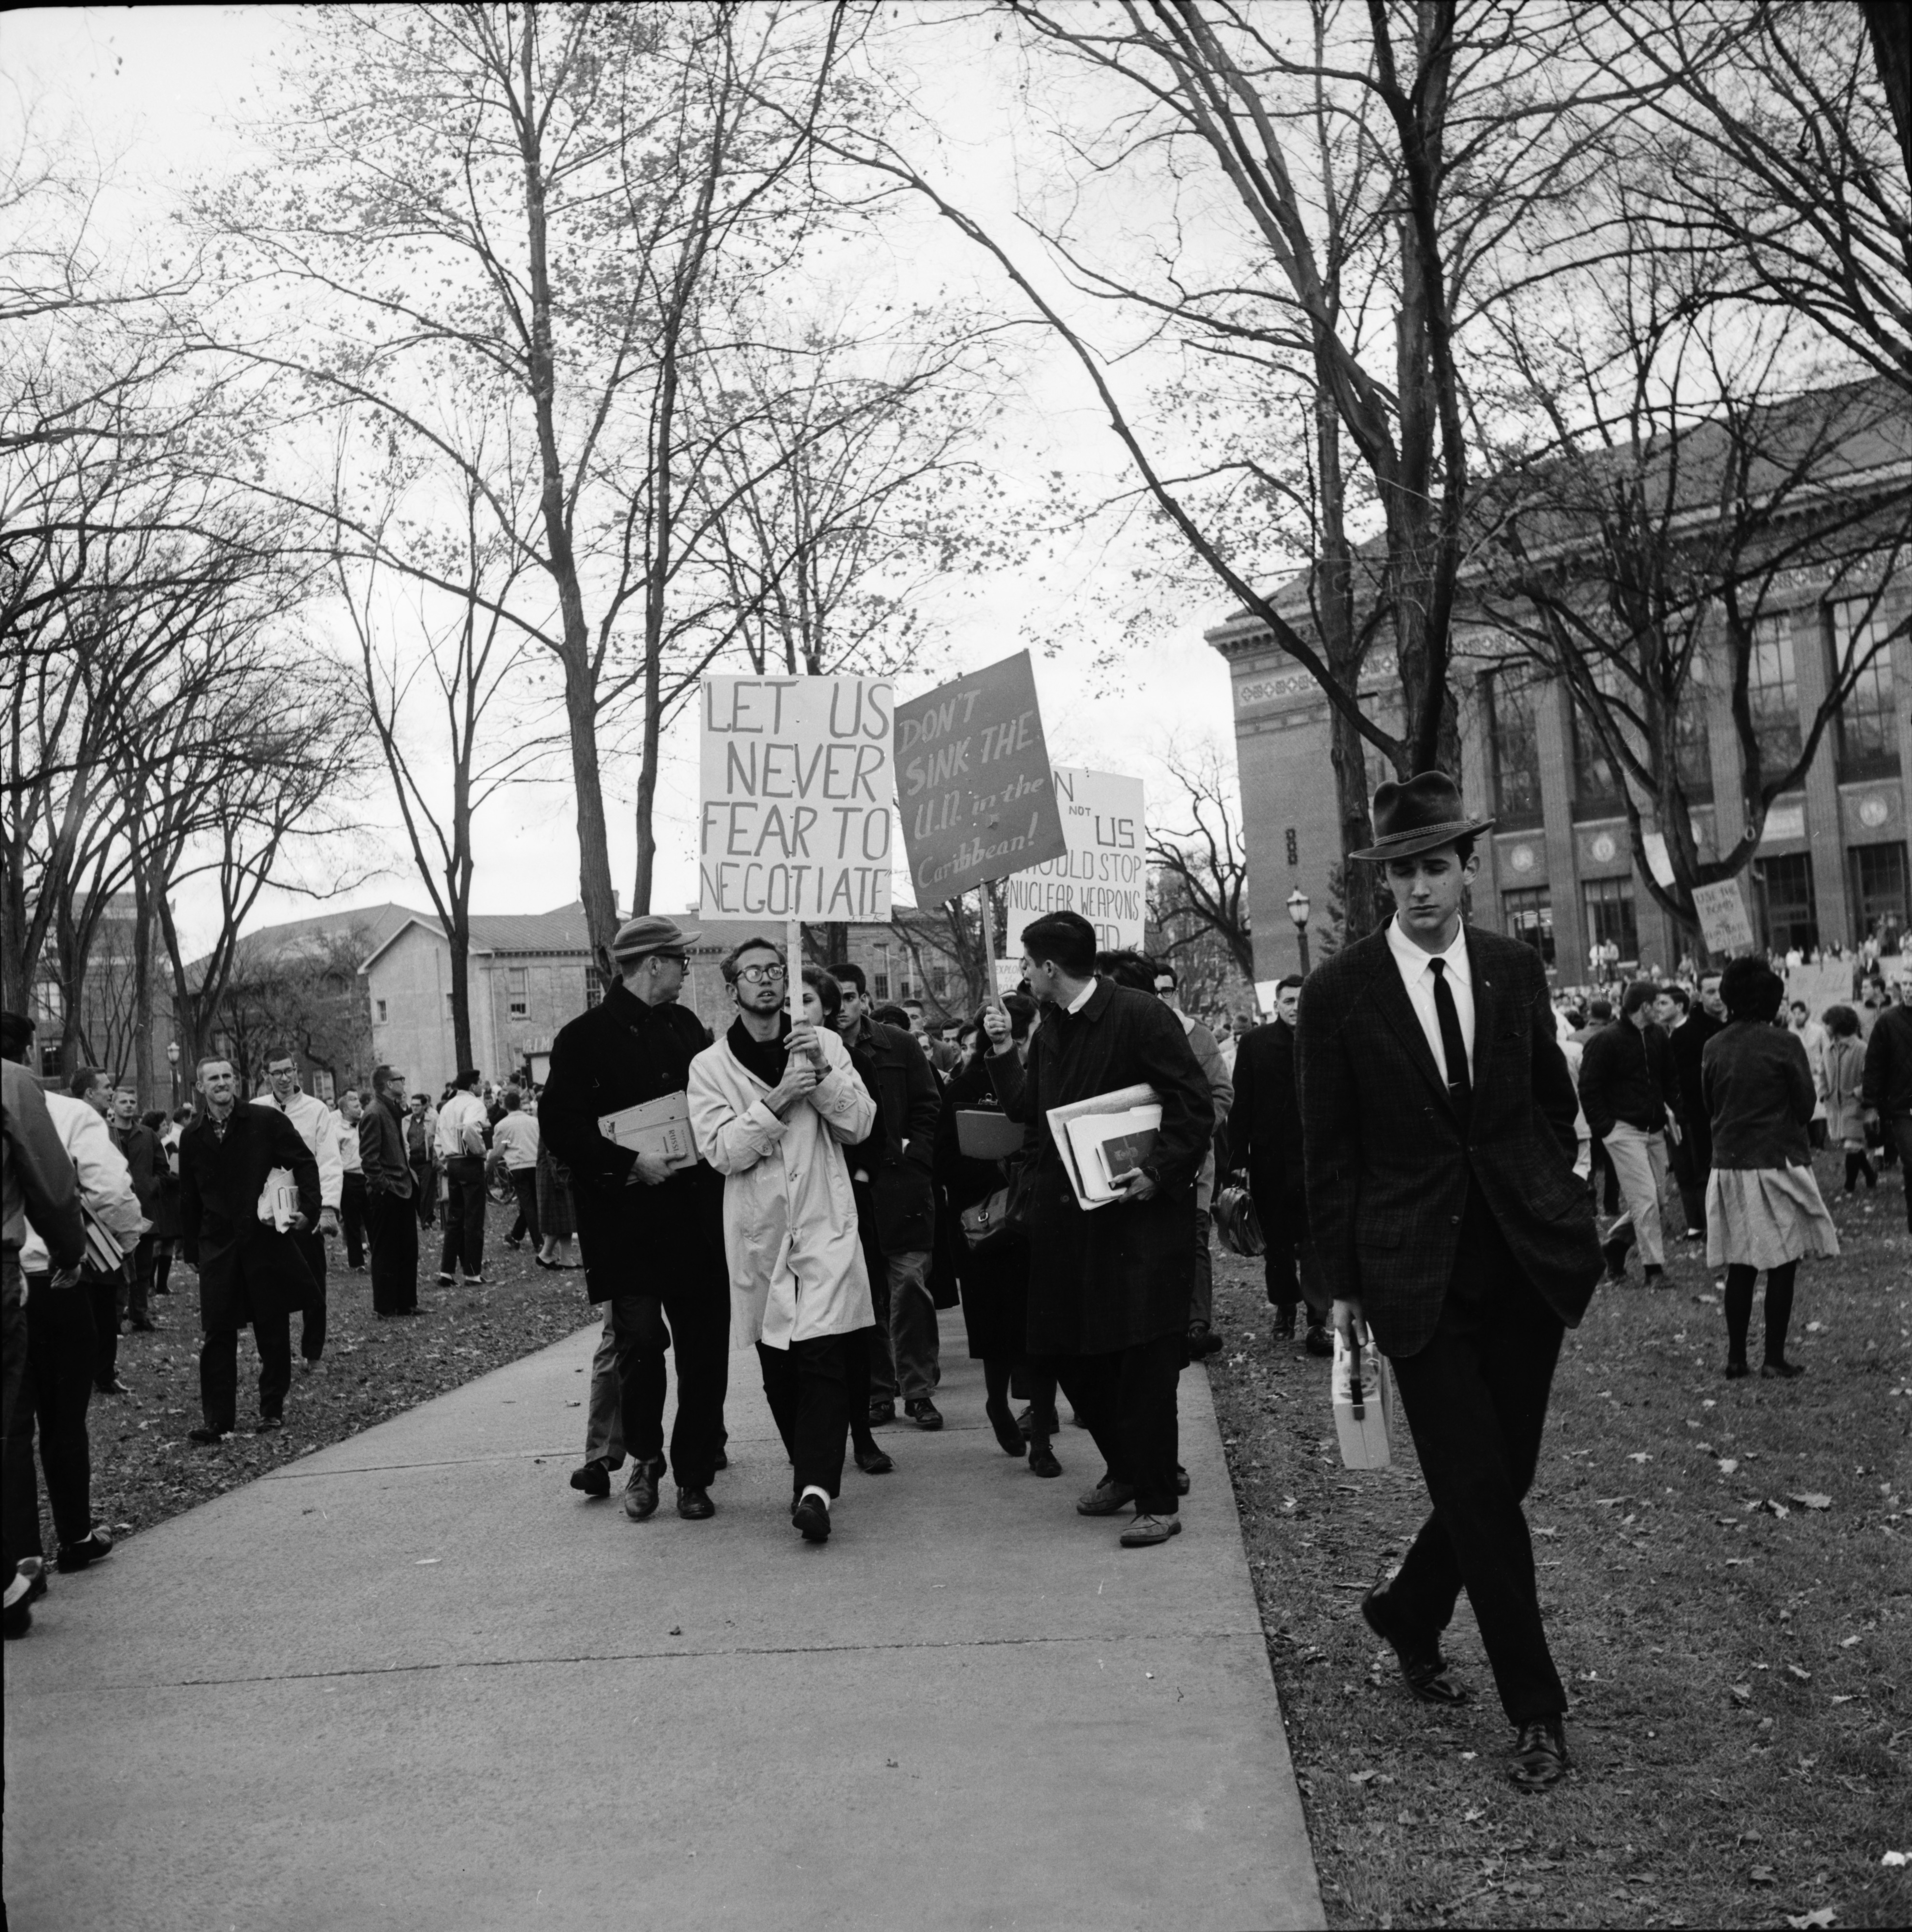 Demonstrators for and against America's Cuban blockade on Michigan campus, October 25, 1962 image